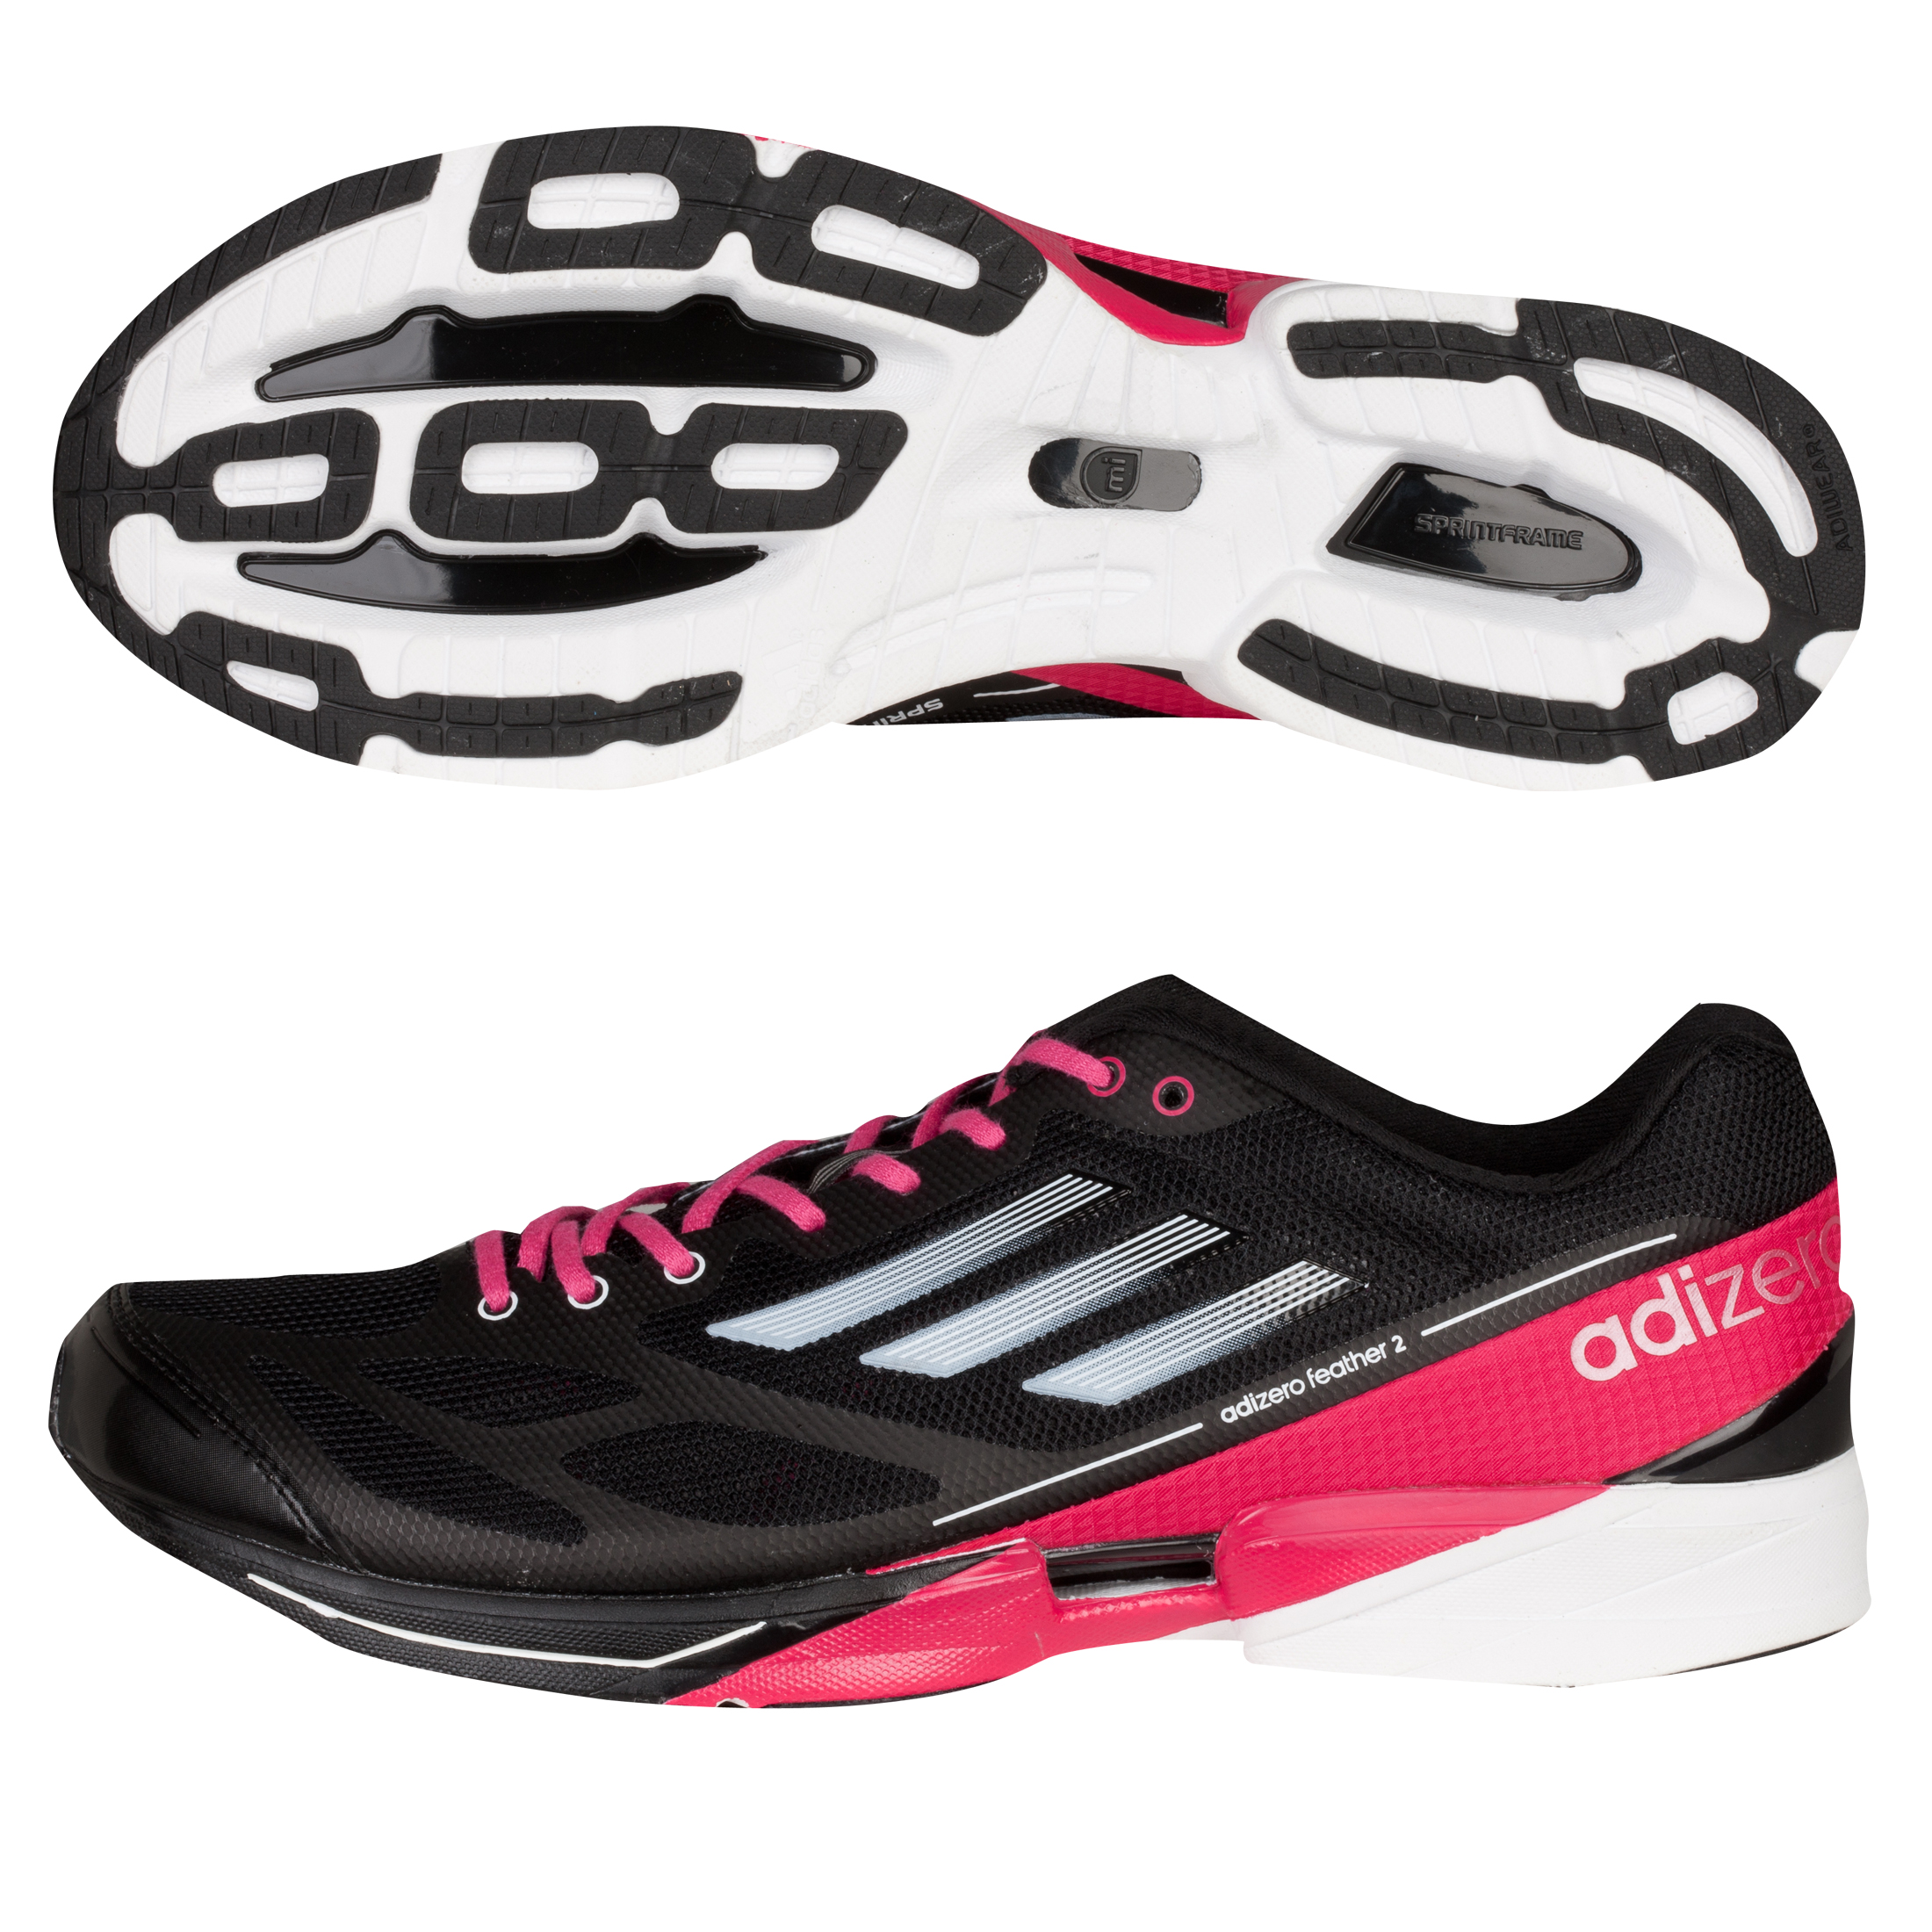 Adidas Adizero Feather 2 Running Trainers - Black/Running White/Bright Pink - Womens